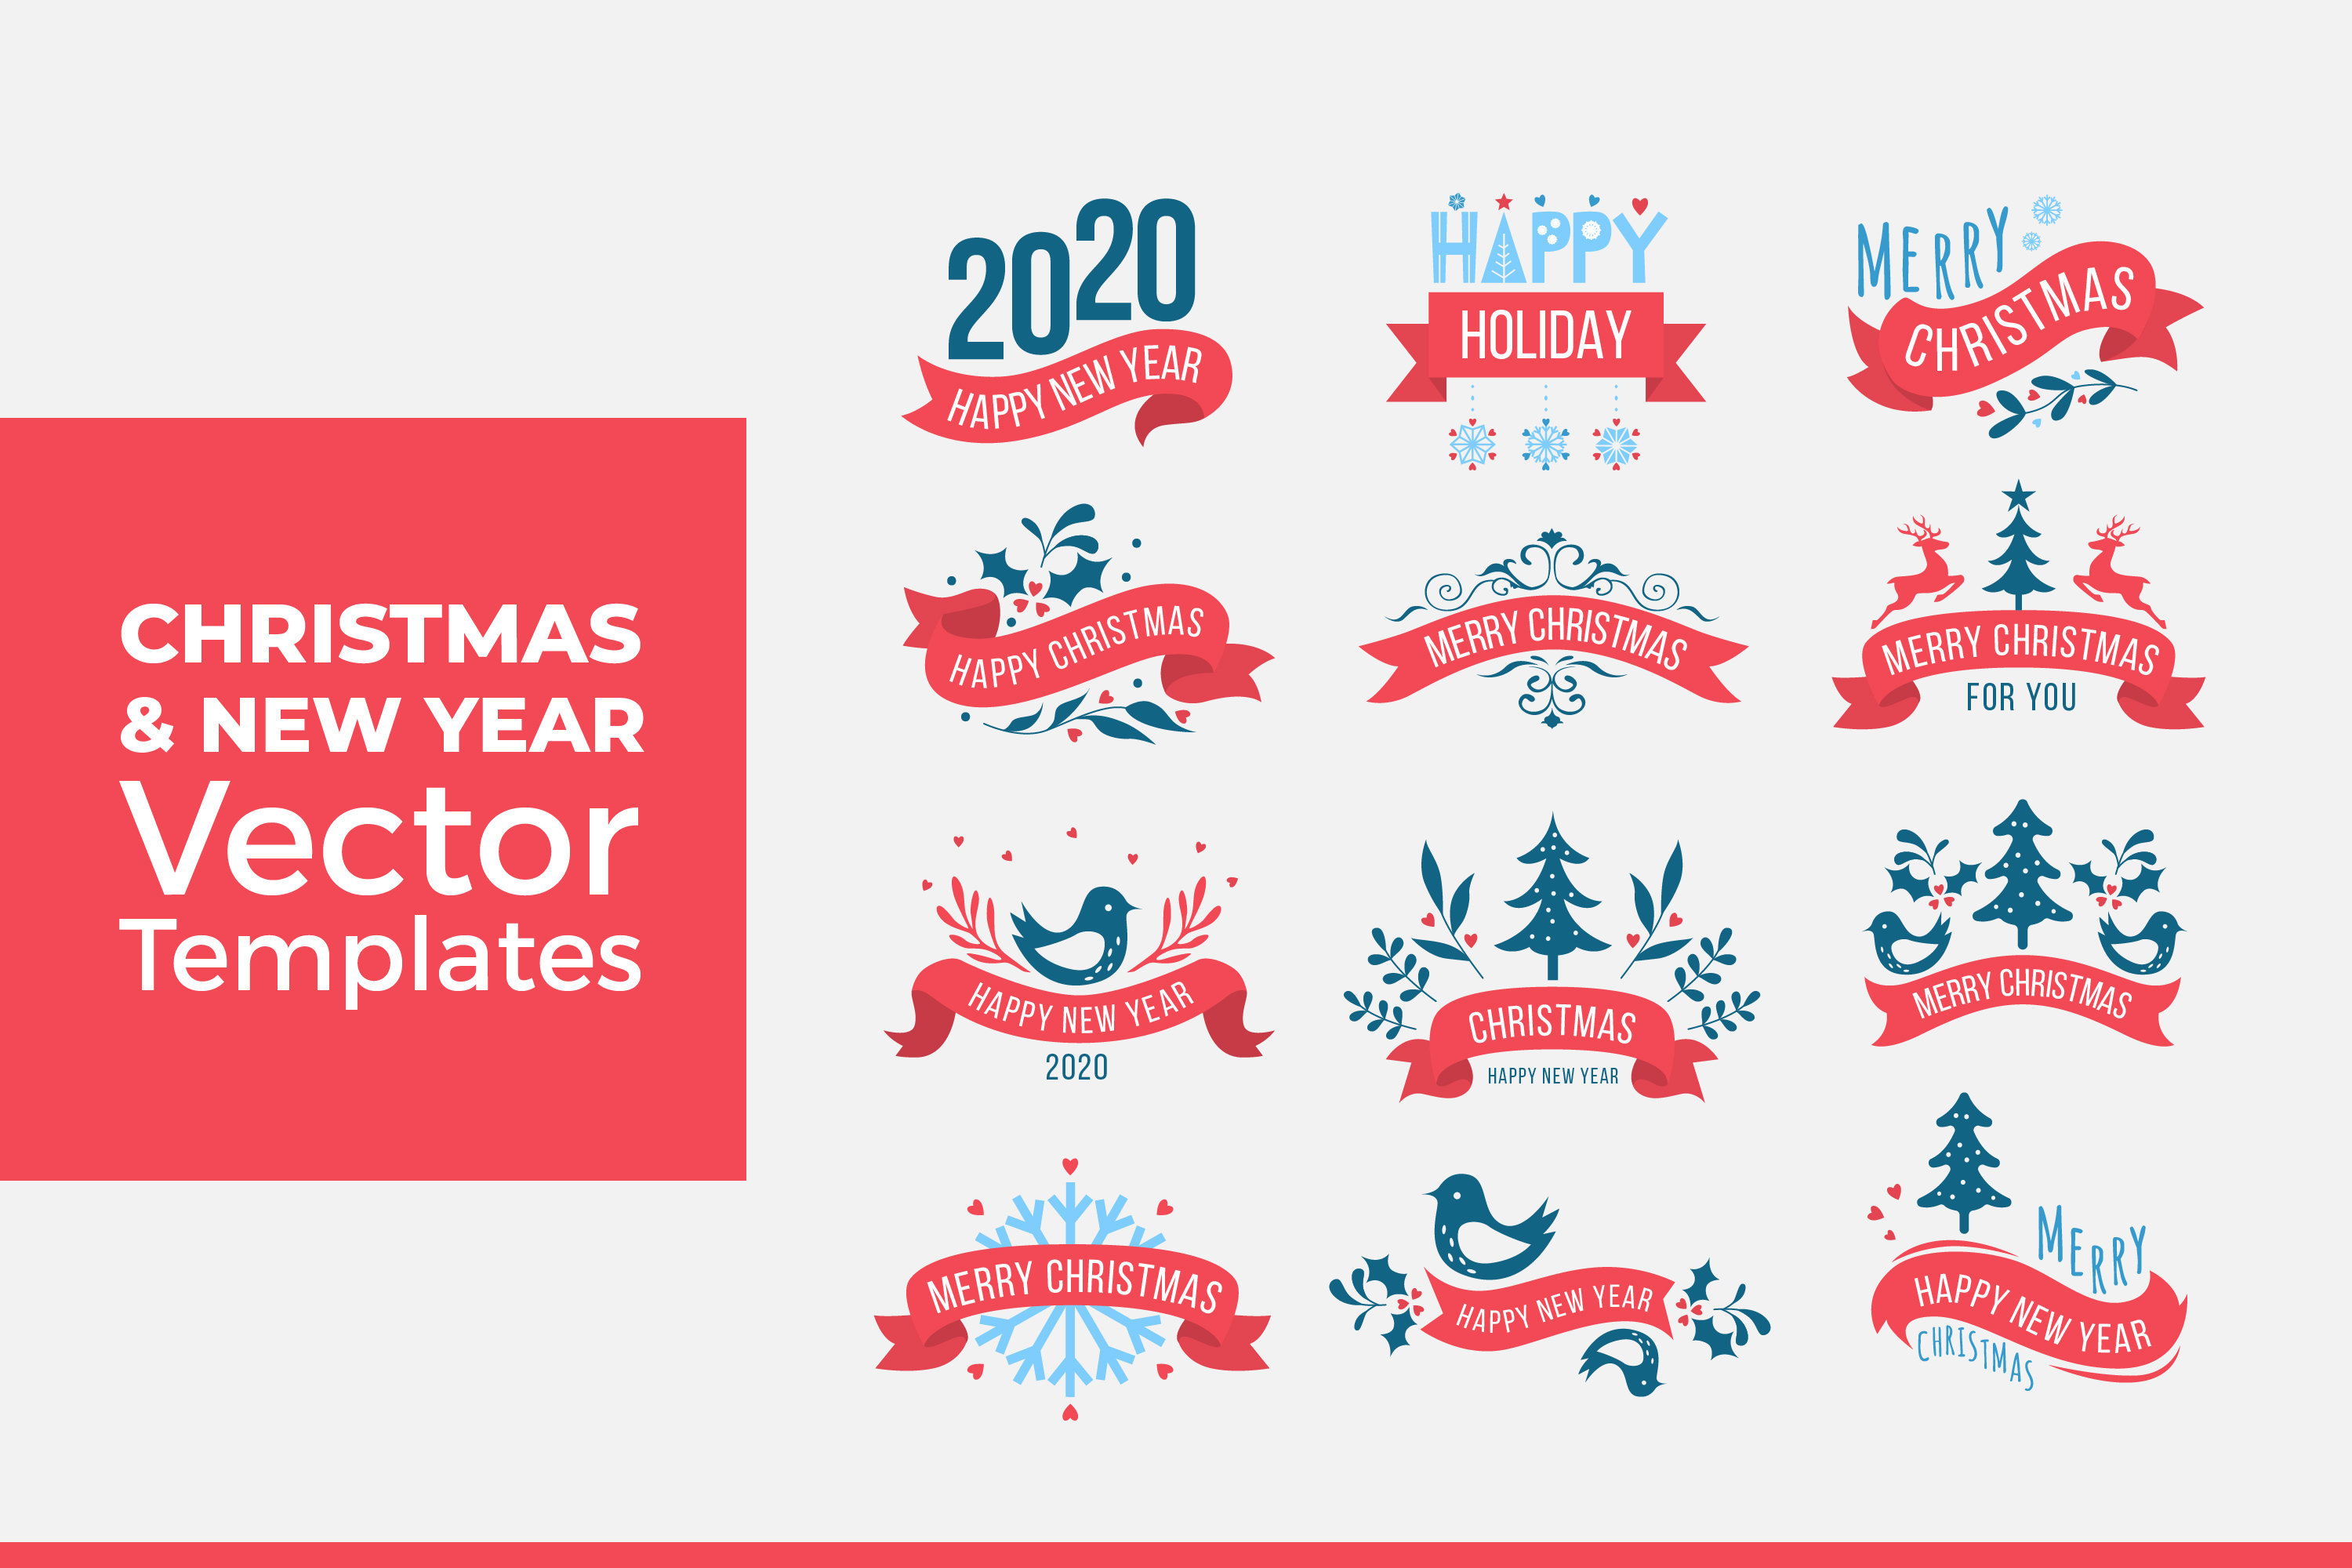 Download Free Christmas And New Year Vector Templates Graphic By Dendysign for Cricut Explore, Silhouette and other cutting machines.